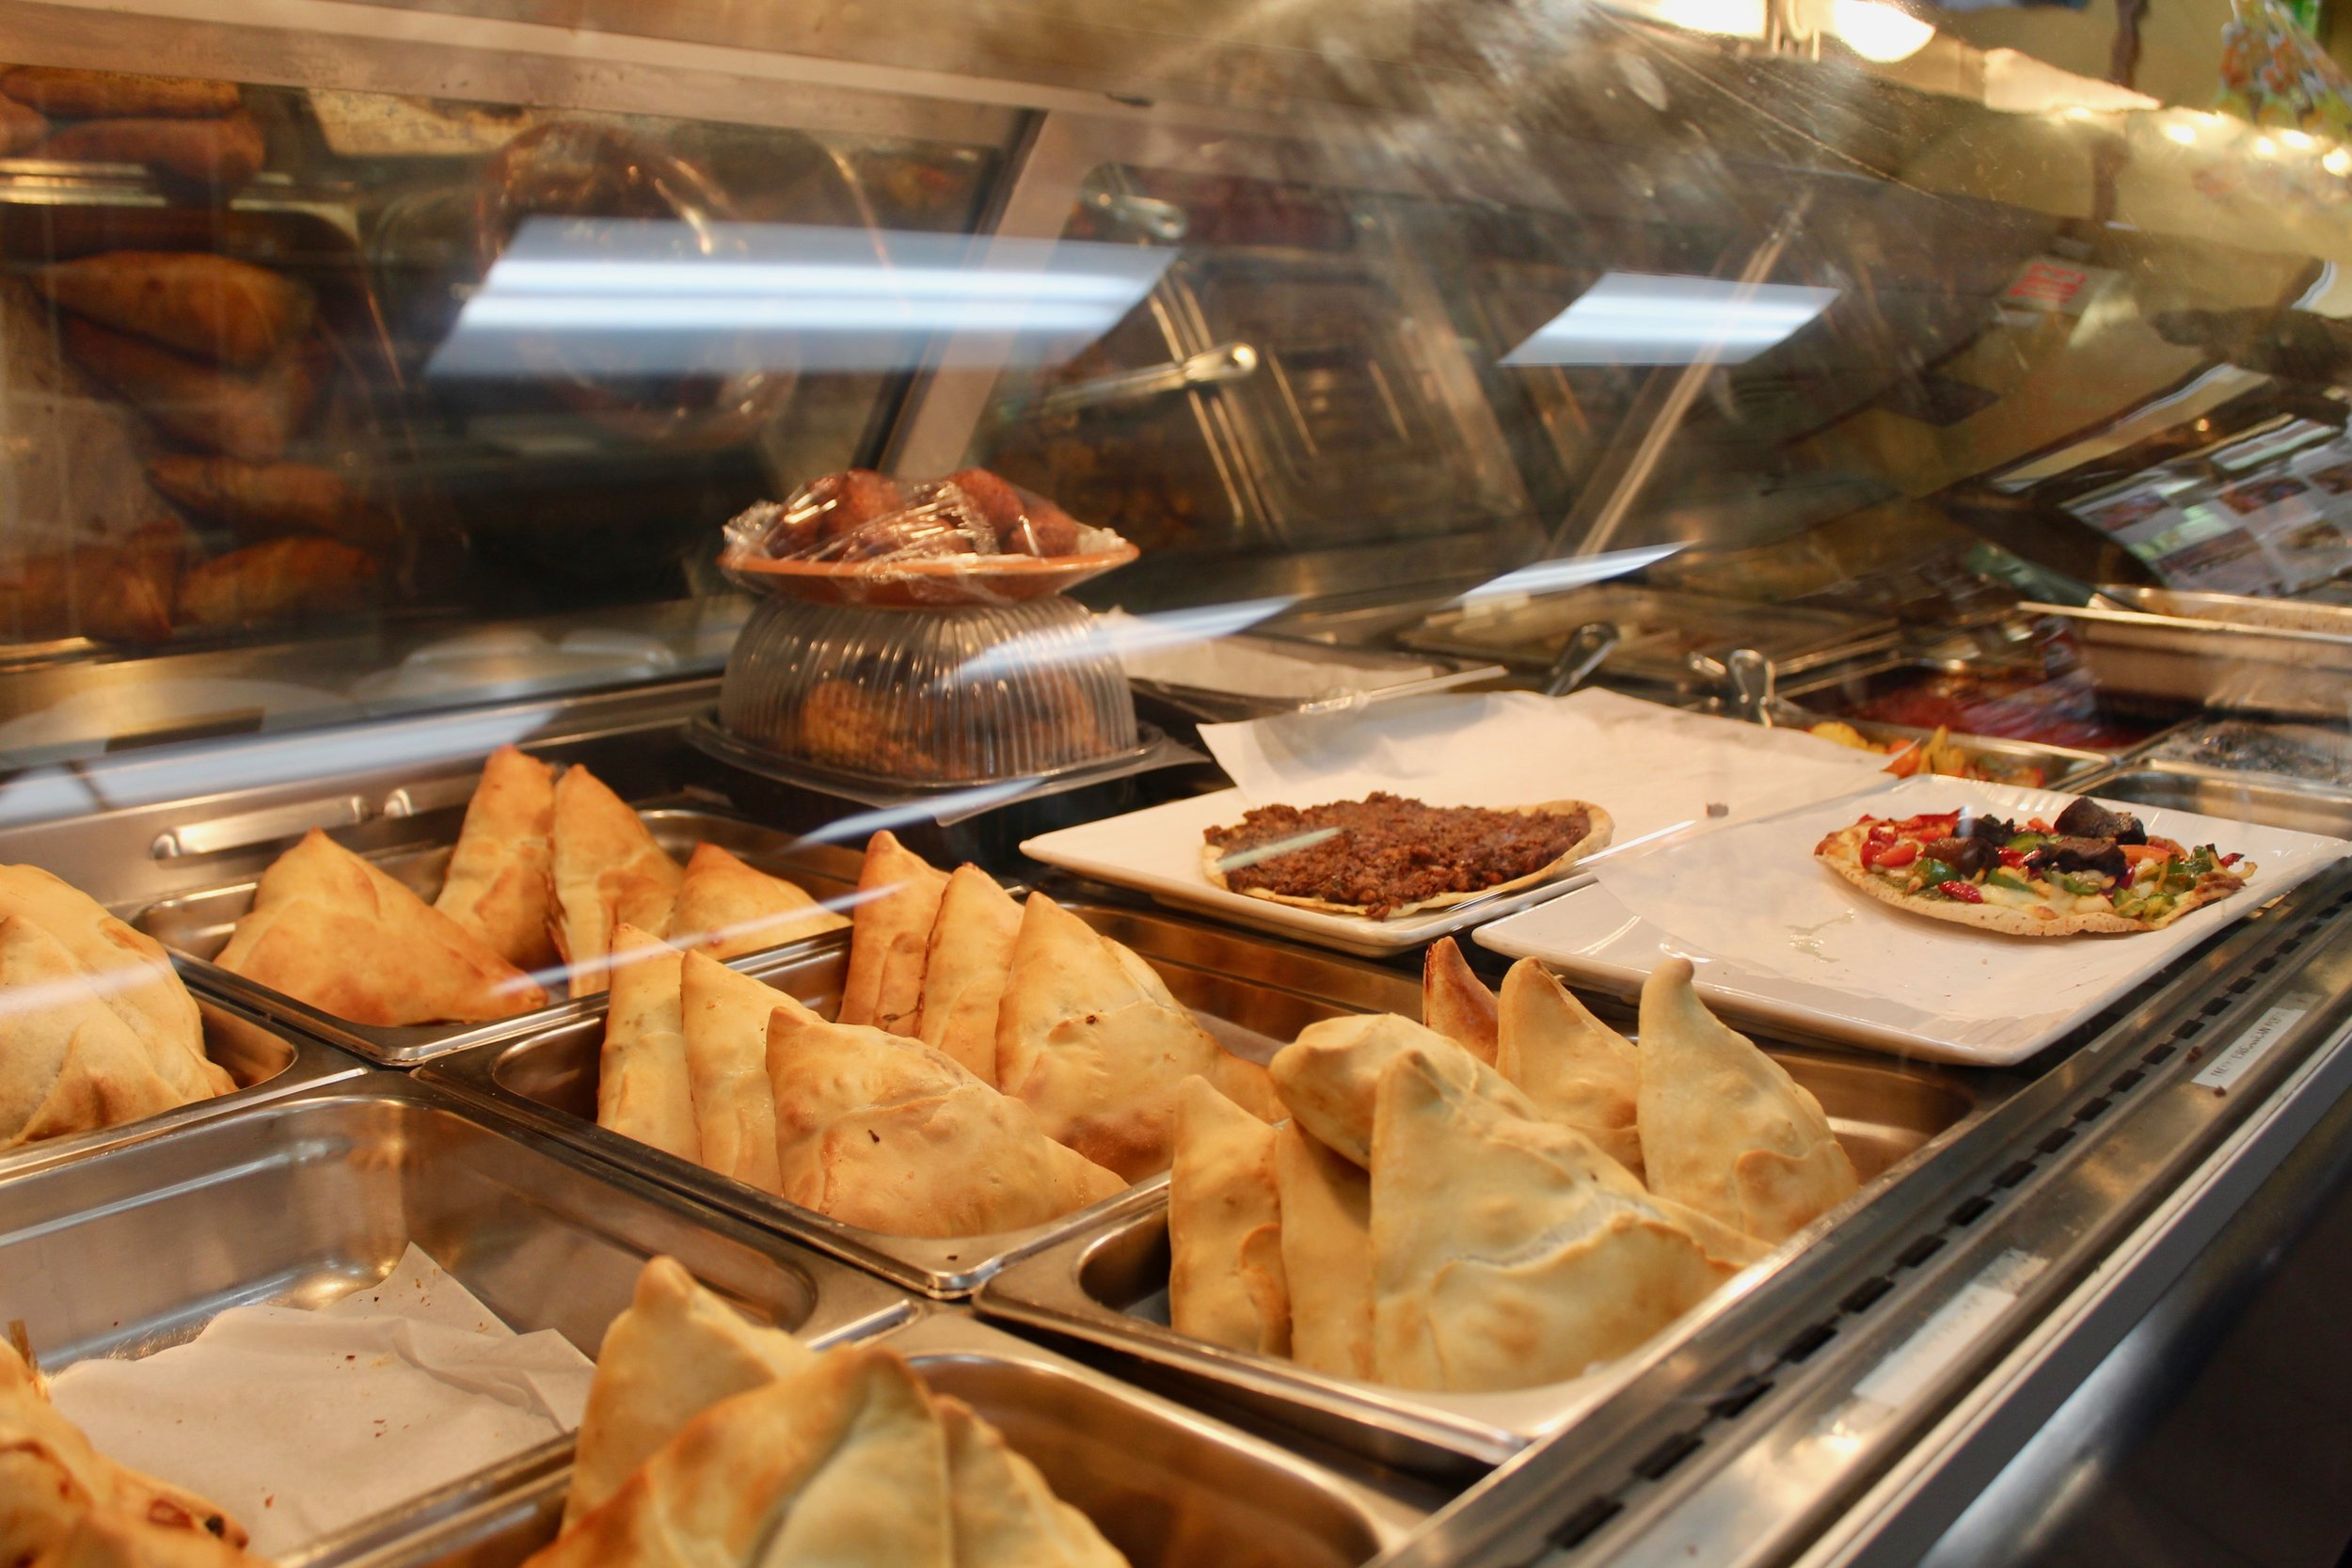 The delicious triangle pockets, or fatayer pies, are the most popular food.